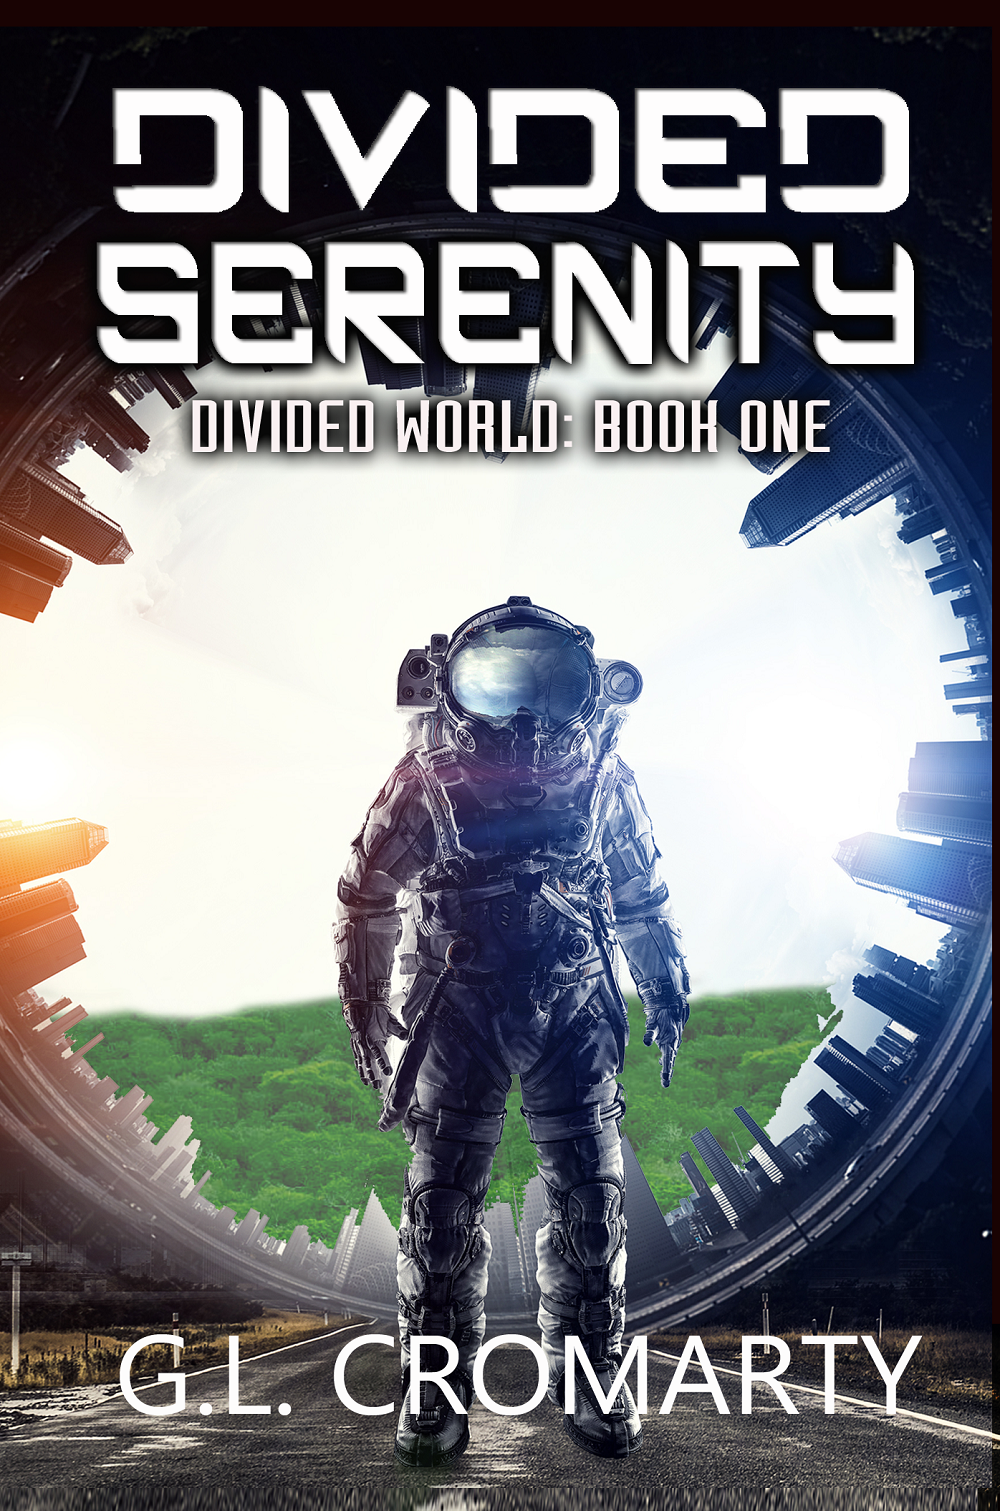 """Divided Serenity: Divided World: Book One"""